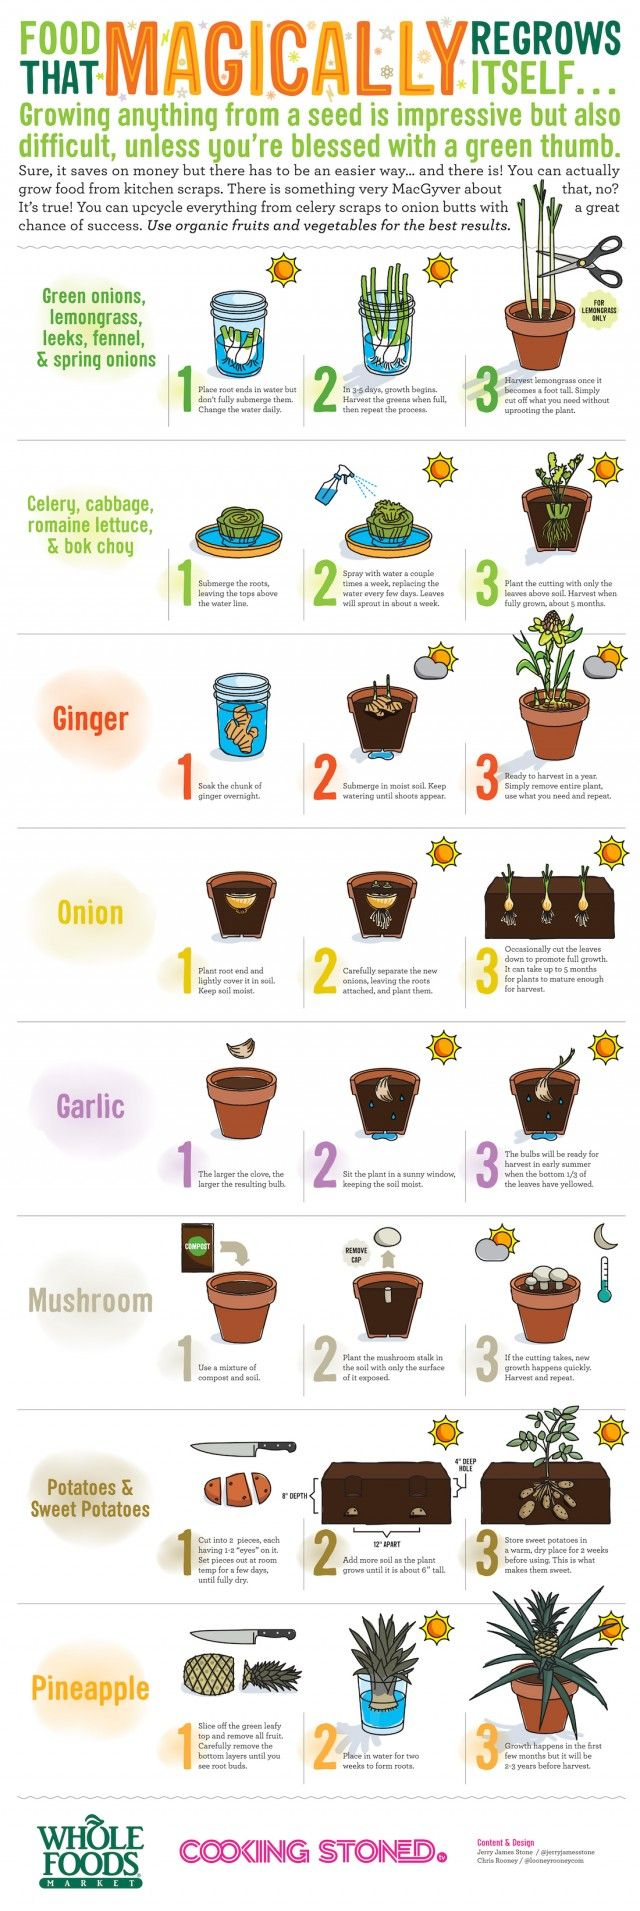 Food That Magically Regrows Itself from Kitchen Scraps - Cooking Stoned